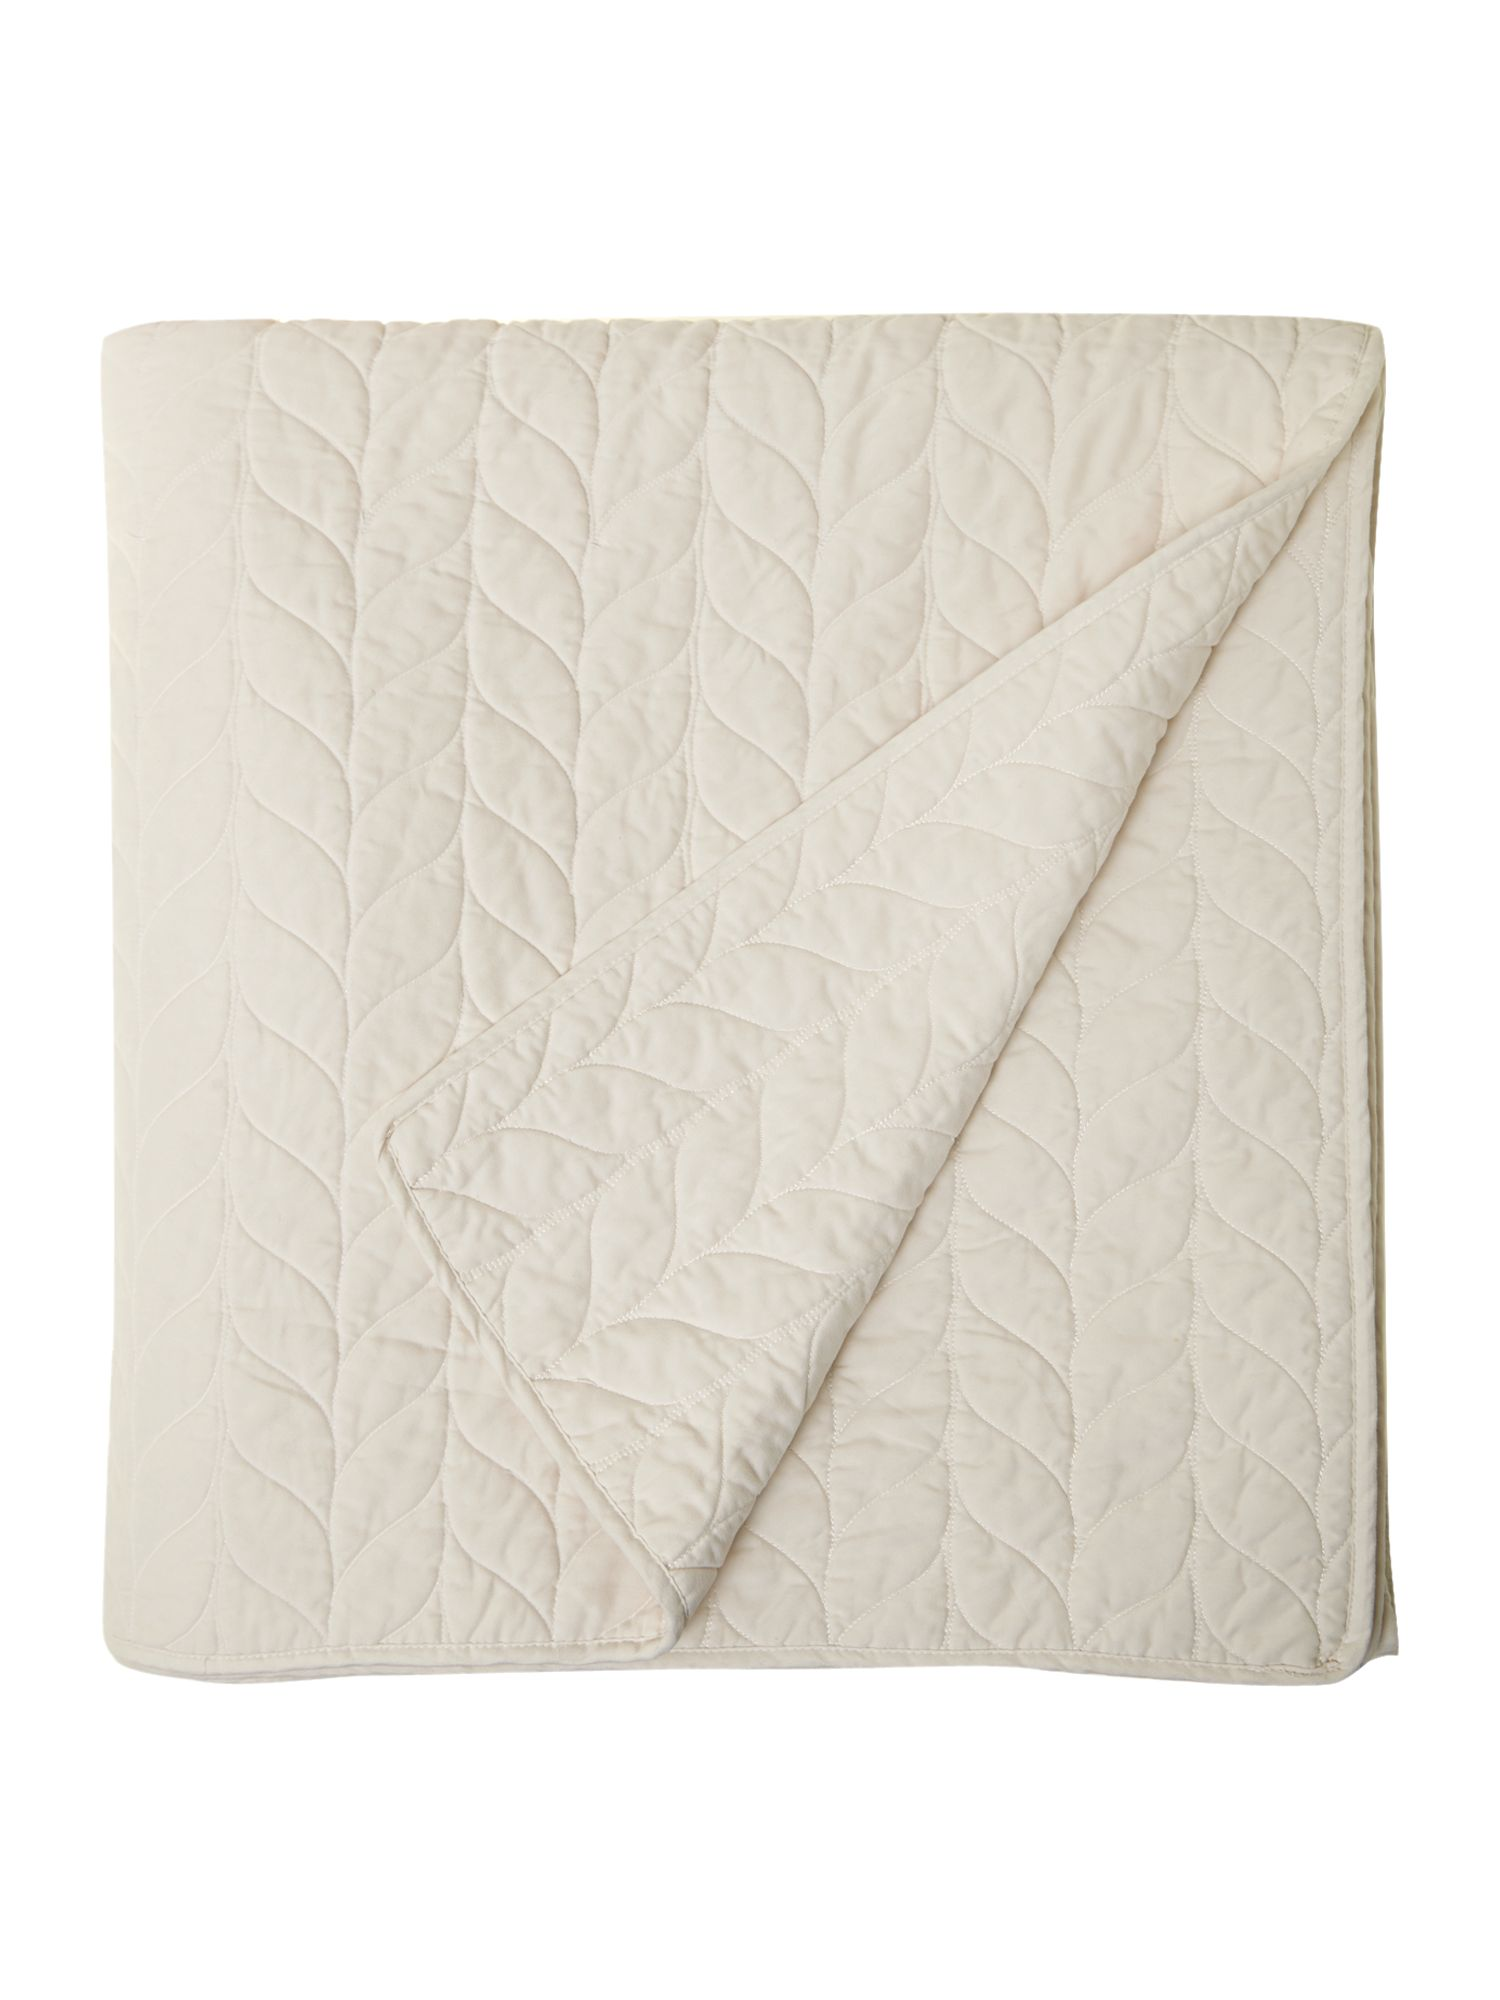 Laurel white bedspread